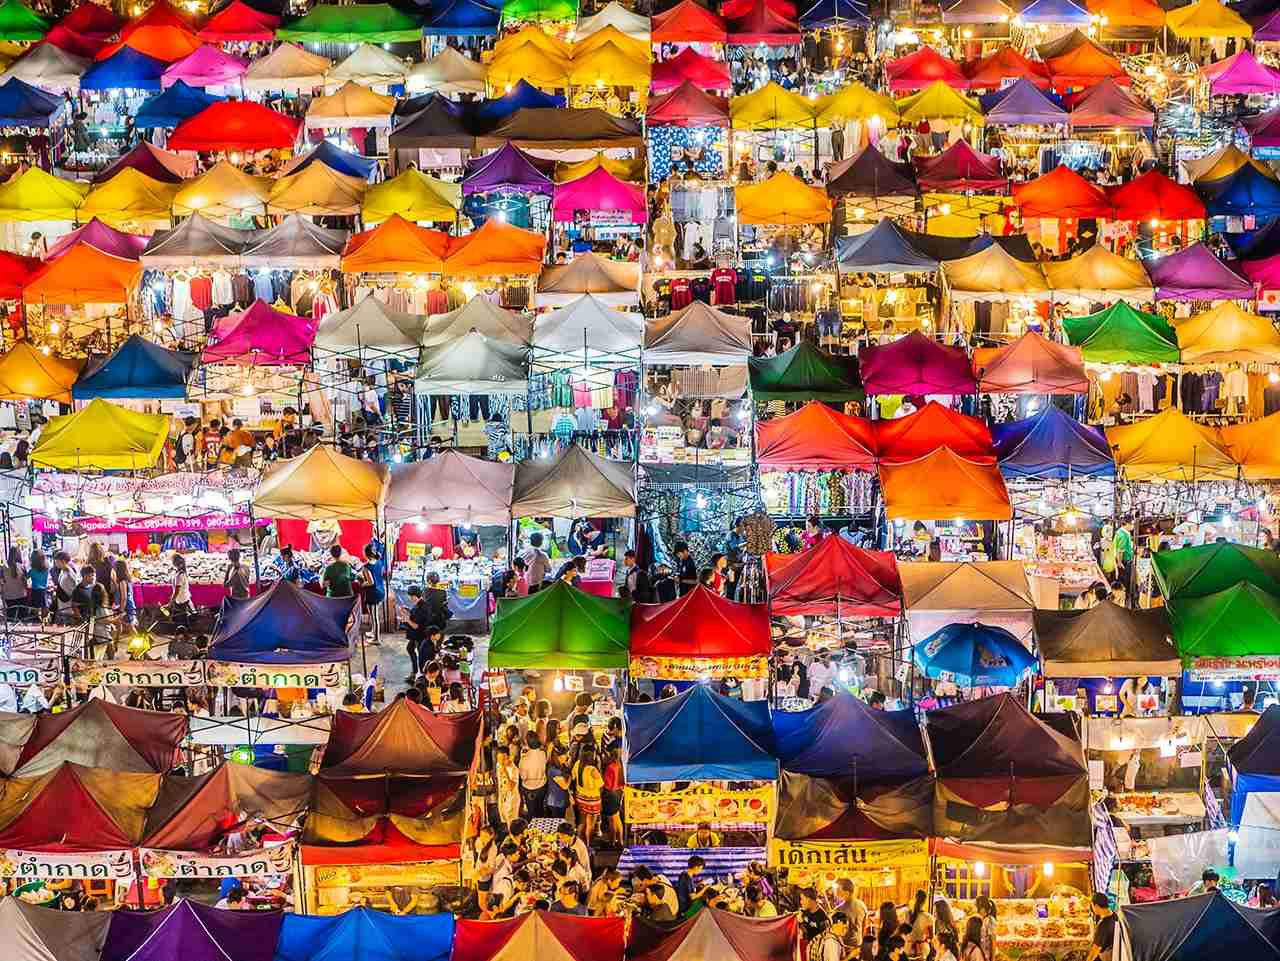 The popular Rod Fai market in Ratchada, Bangkok. (Photo by aluxum / Getty Images)